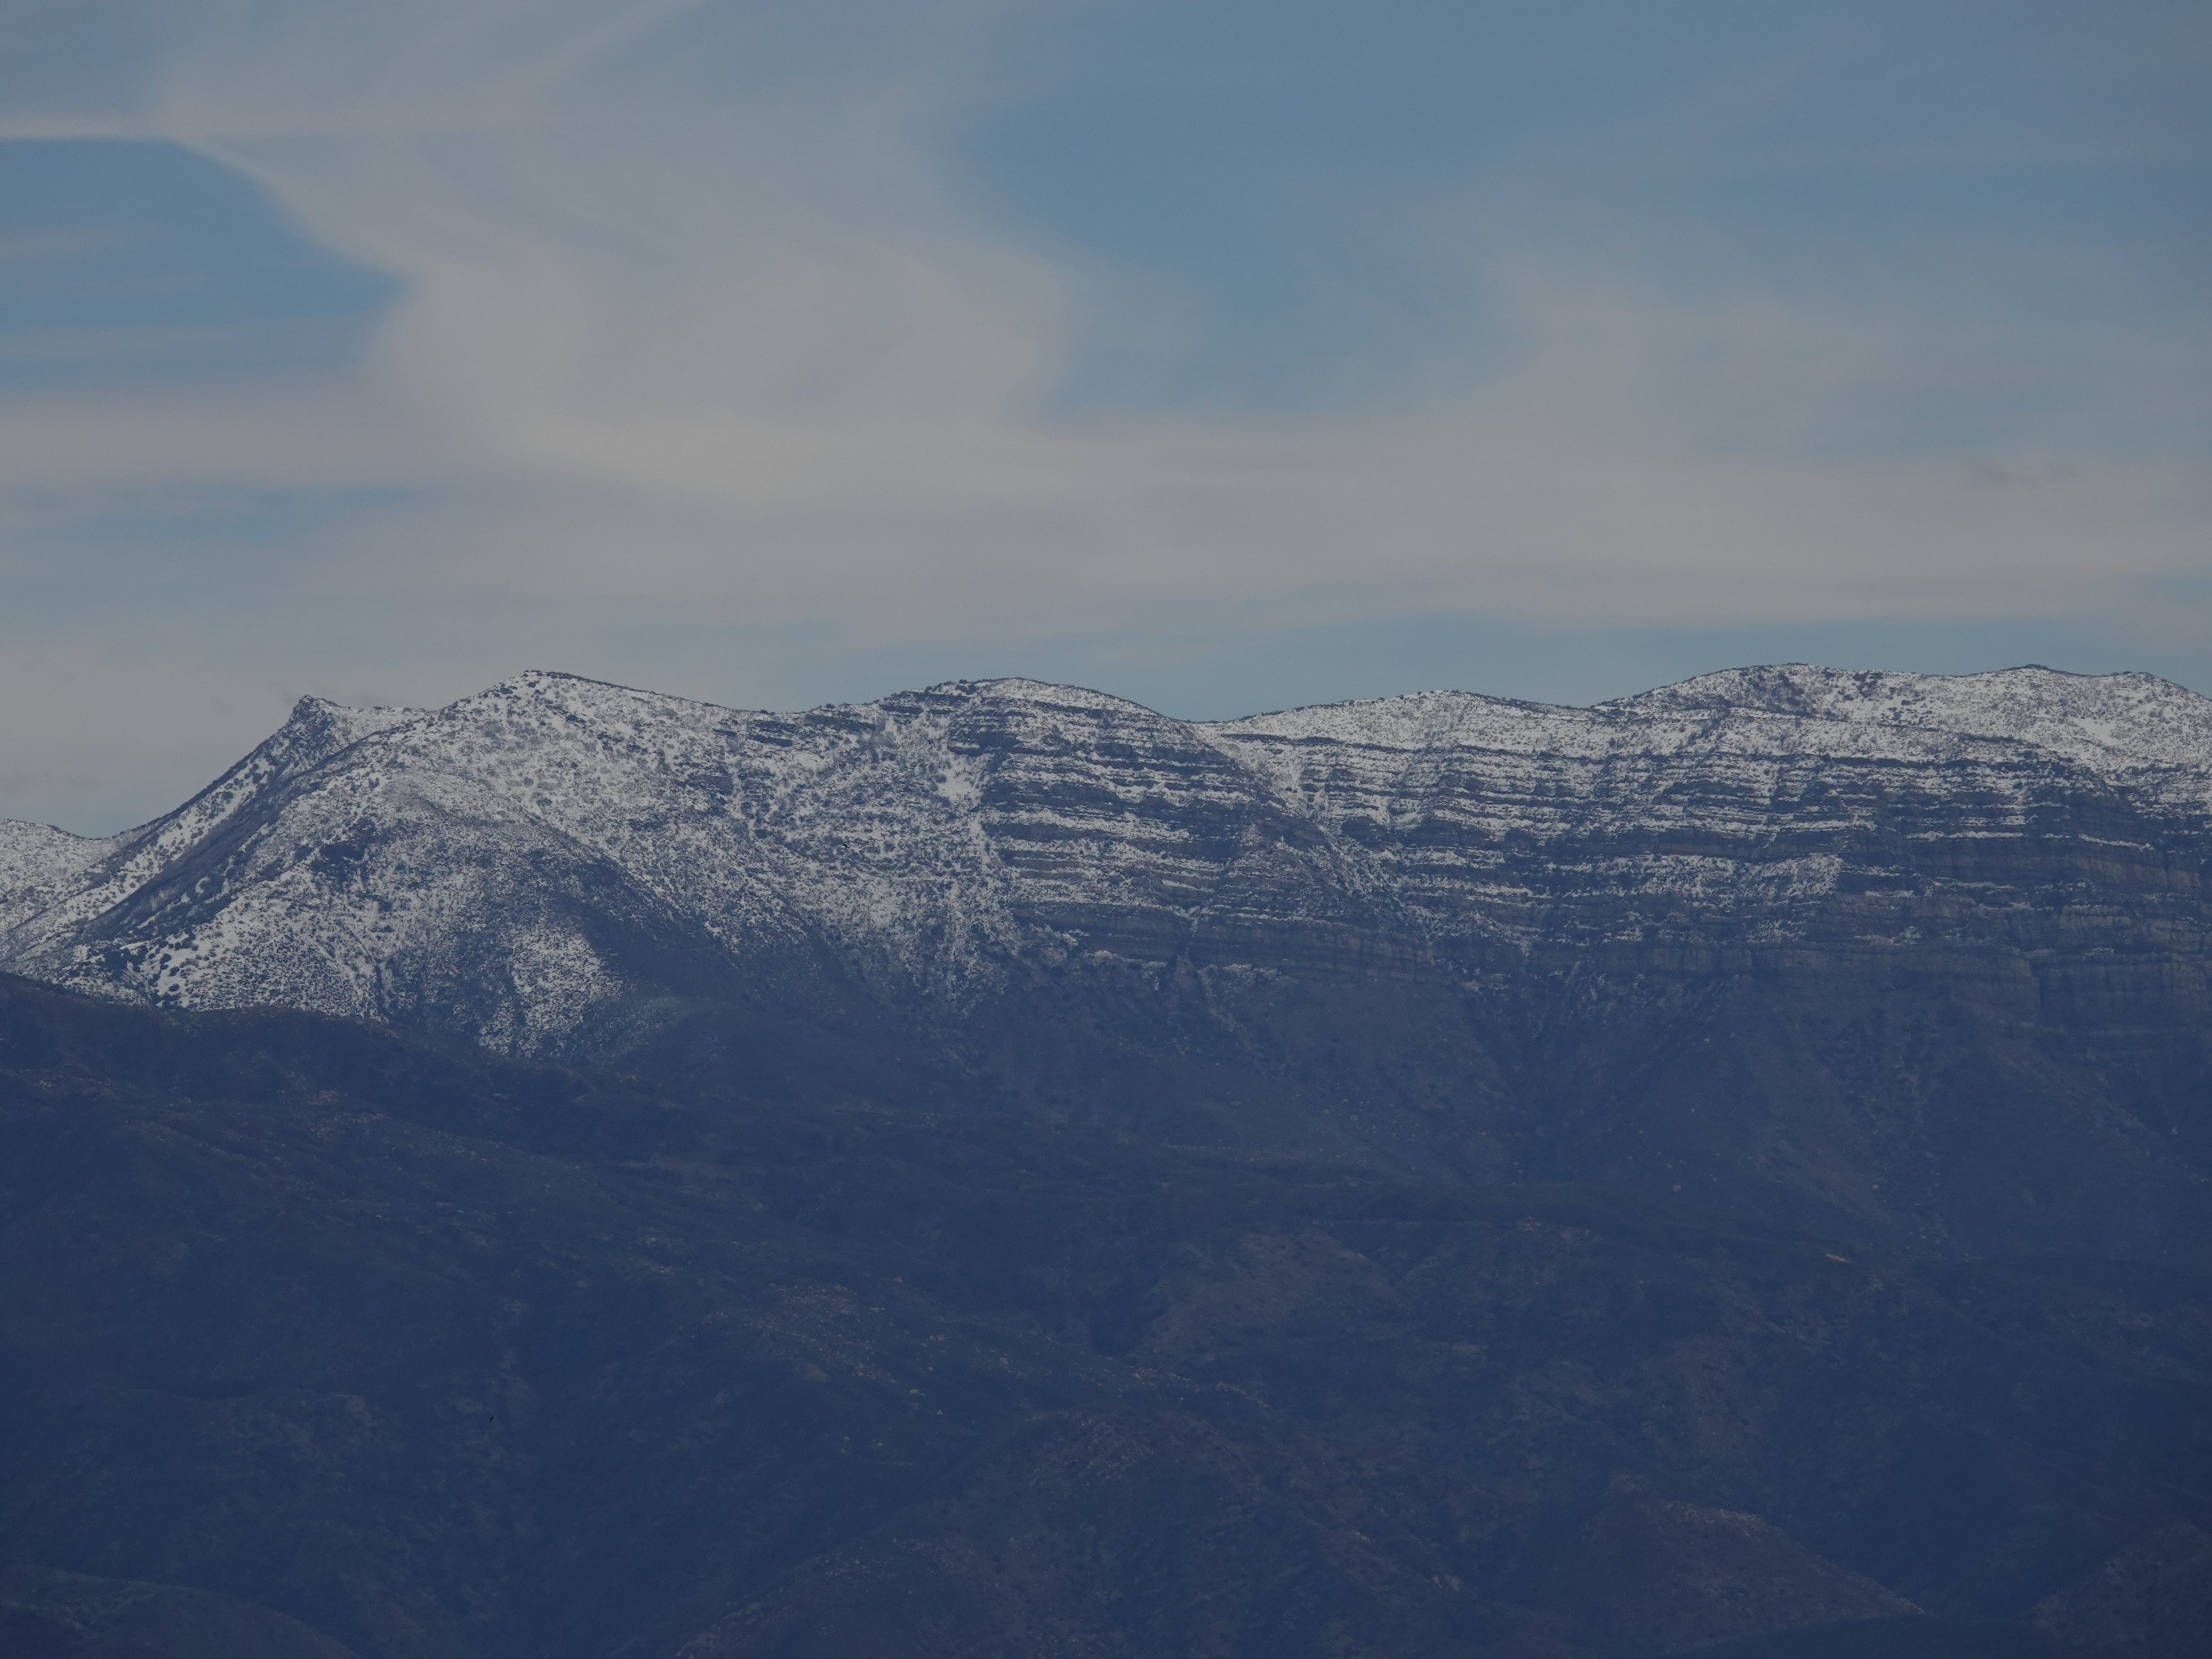 Snow was visible on peaks above Ojai Sunday, as seen here from Highway 150 west of Lake Casitas.